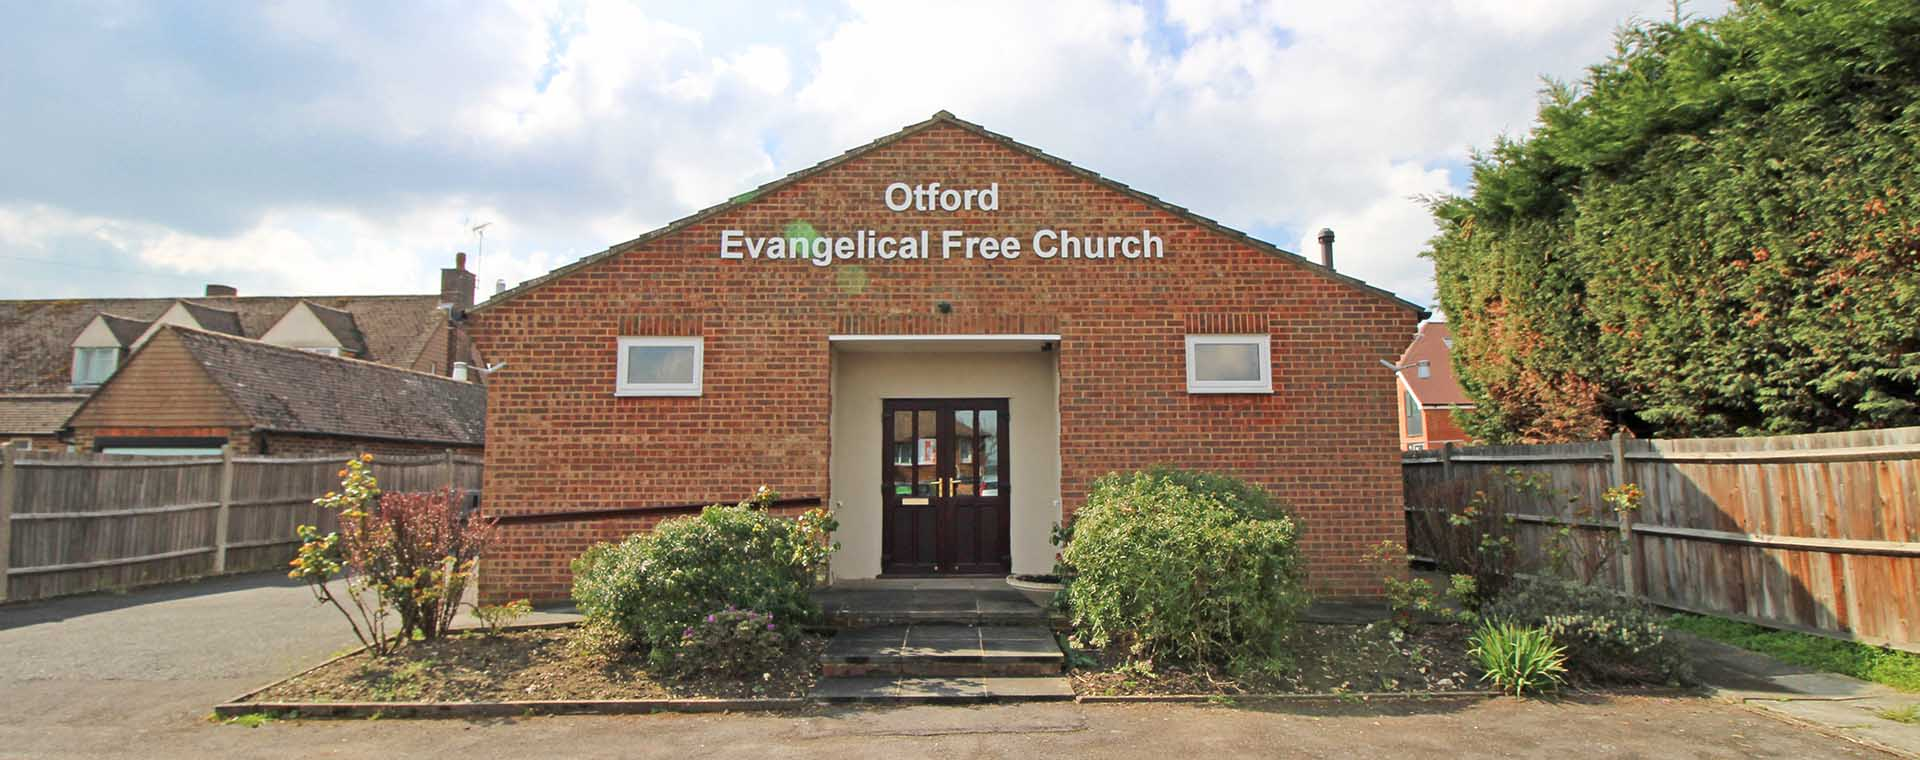 Otford Church Building Photo - Evangelical Free Church near Otford